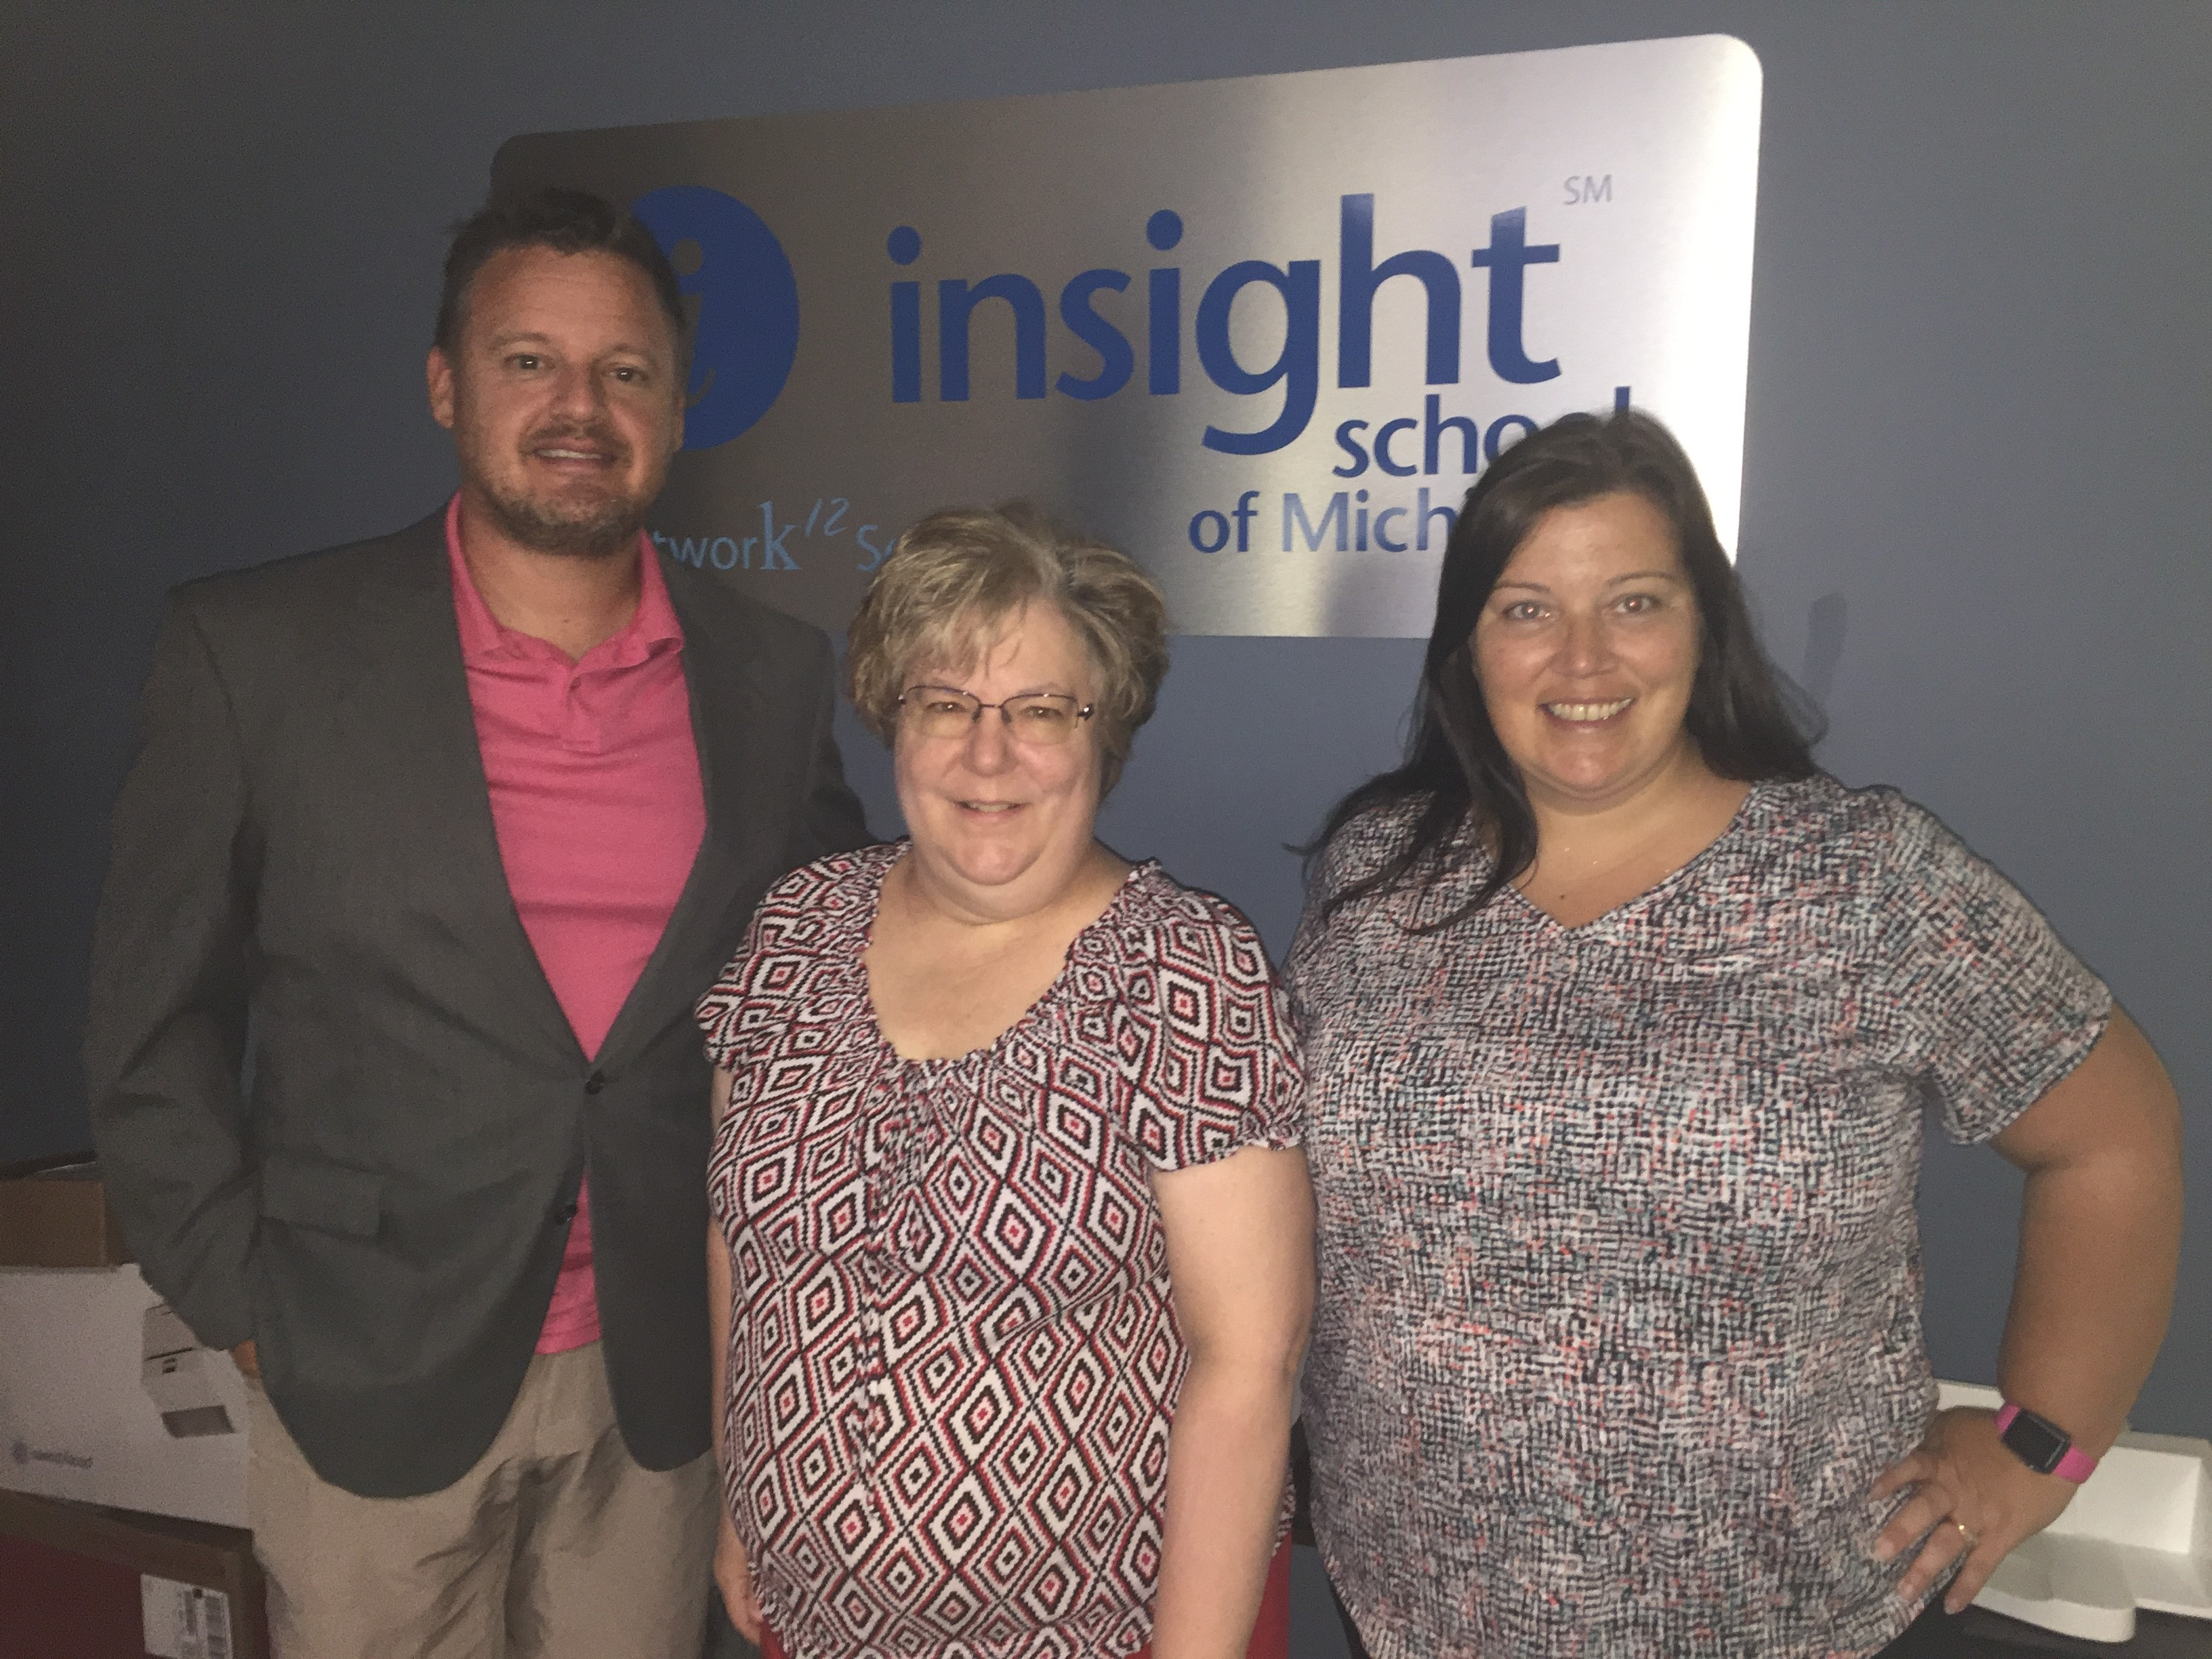 Pictured is Peter Hoekstra, Teresa Boardman and Tonya McGill - Administrative Staff for ISMI